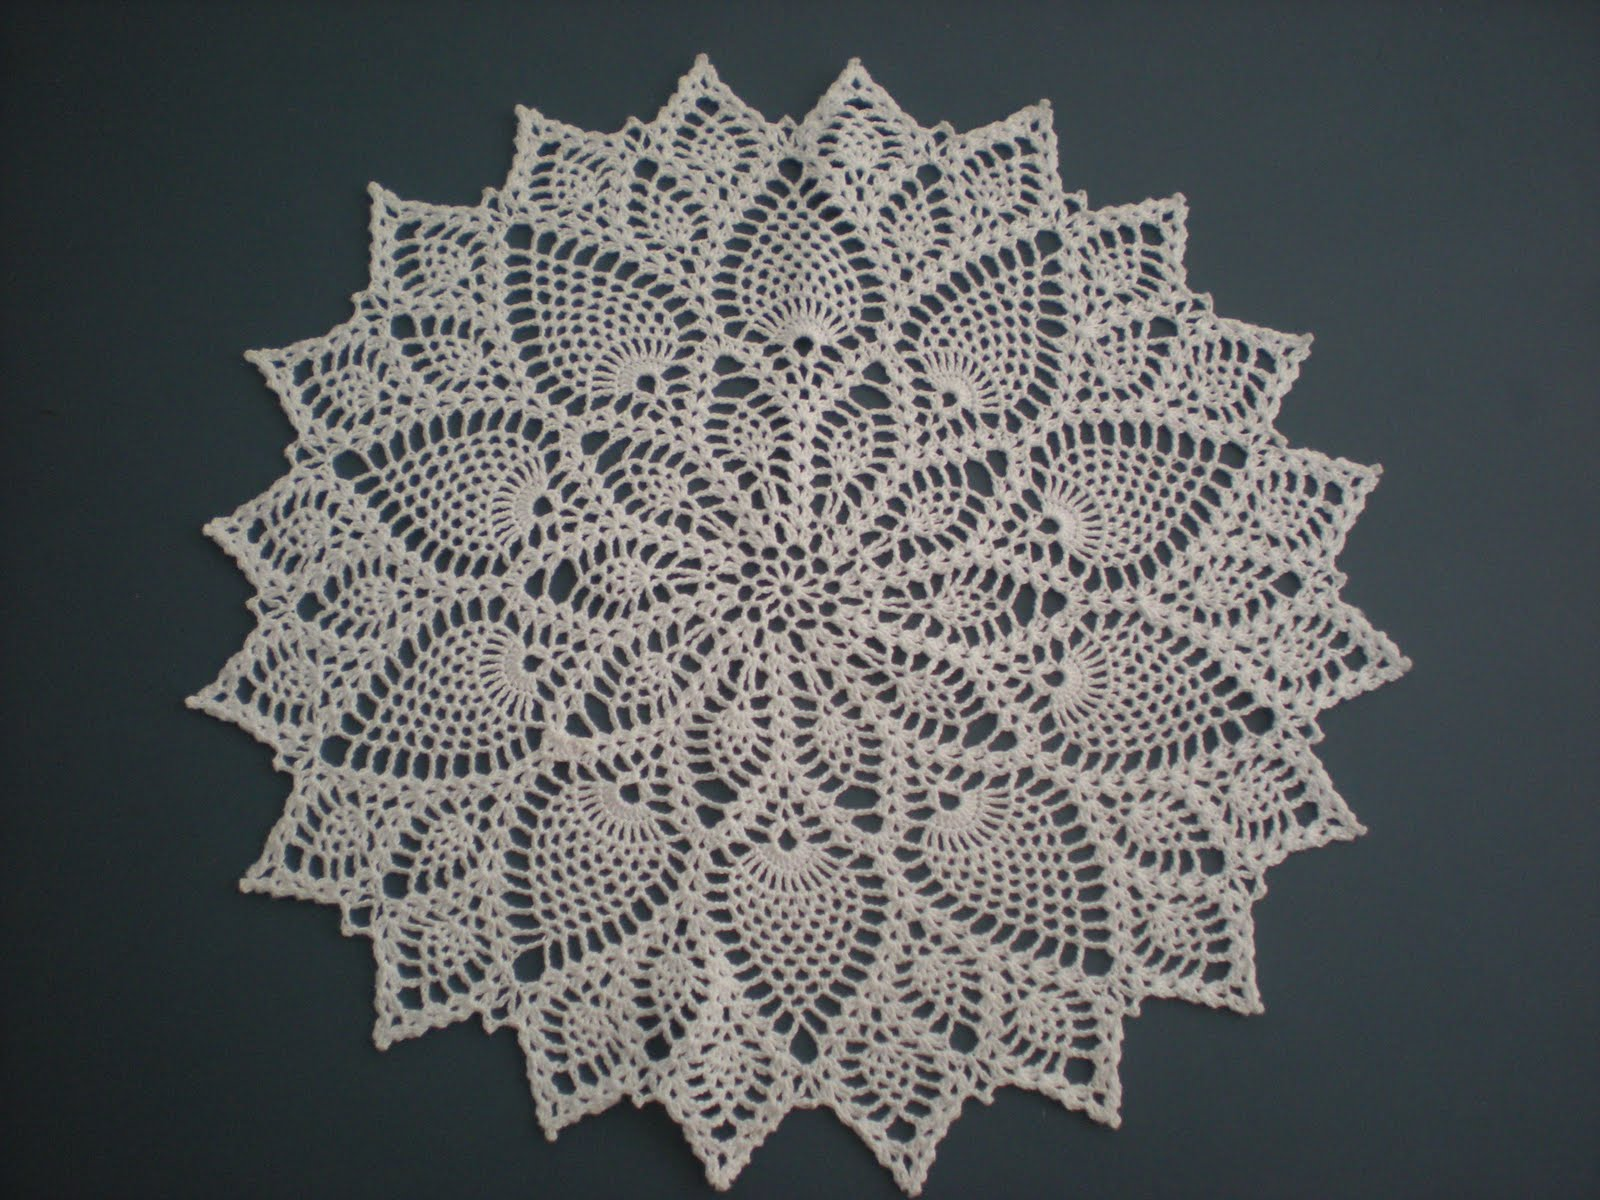 The doily I made from a really good picture!